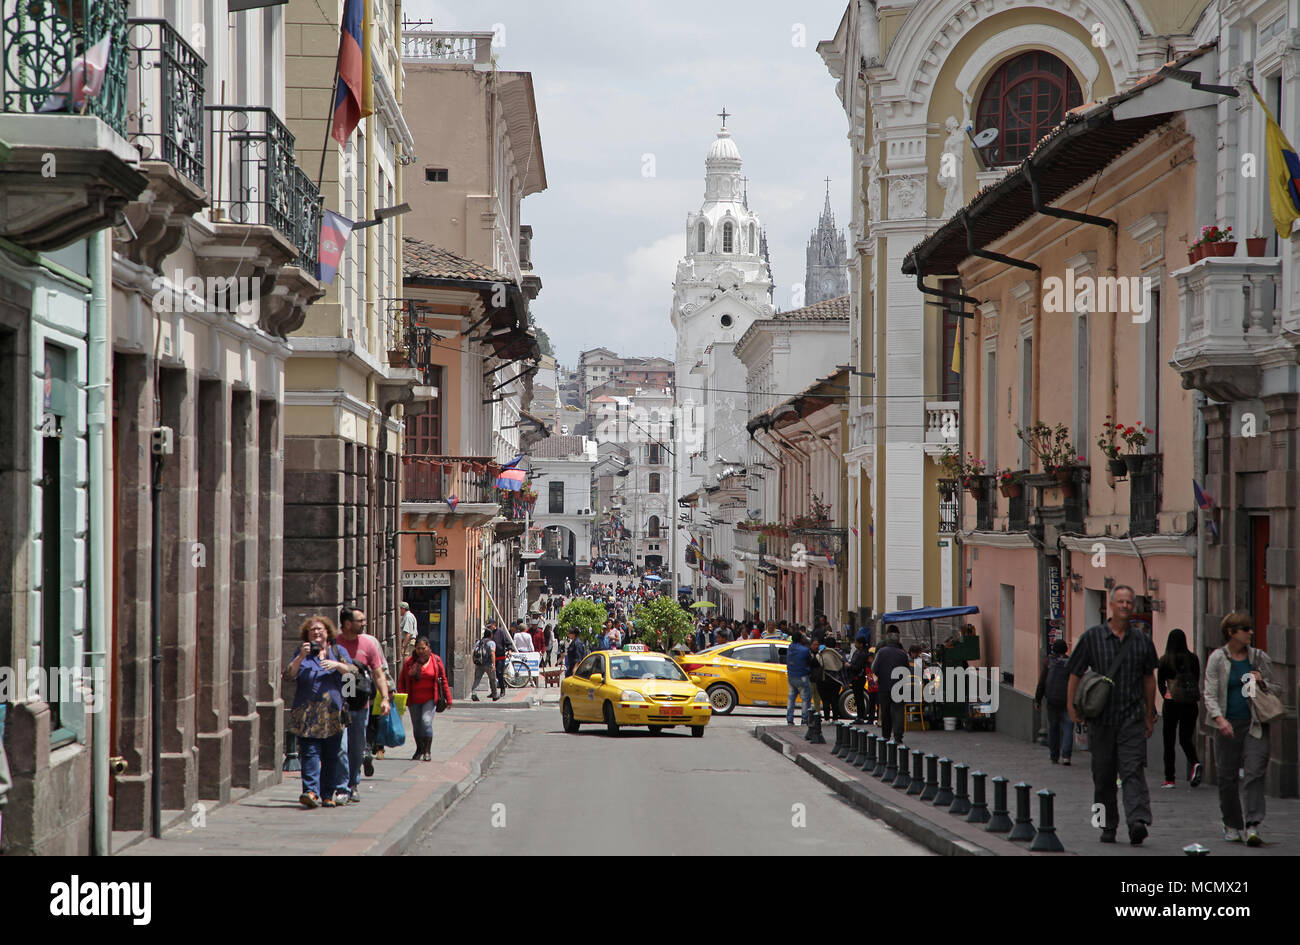 Venezuela Avenue in Quito Ecuador - Stock Image